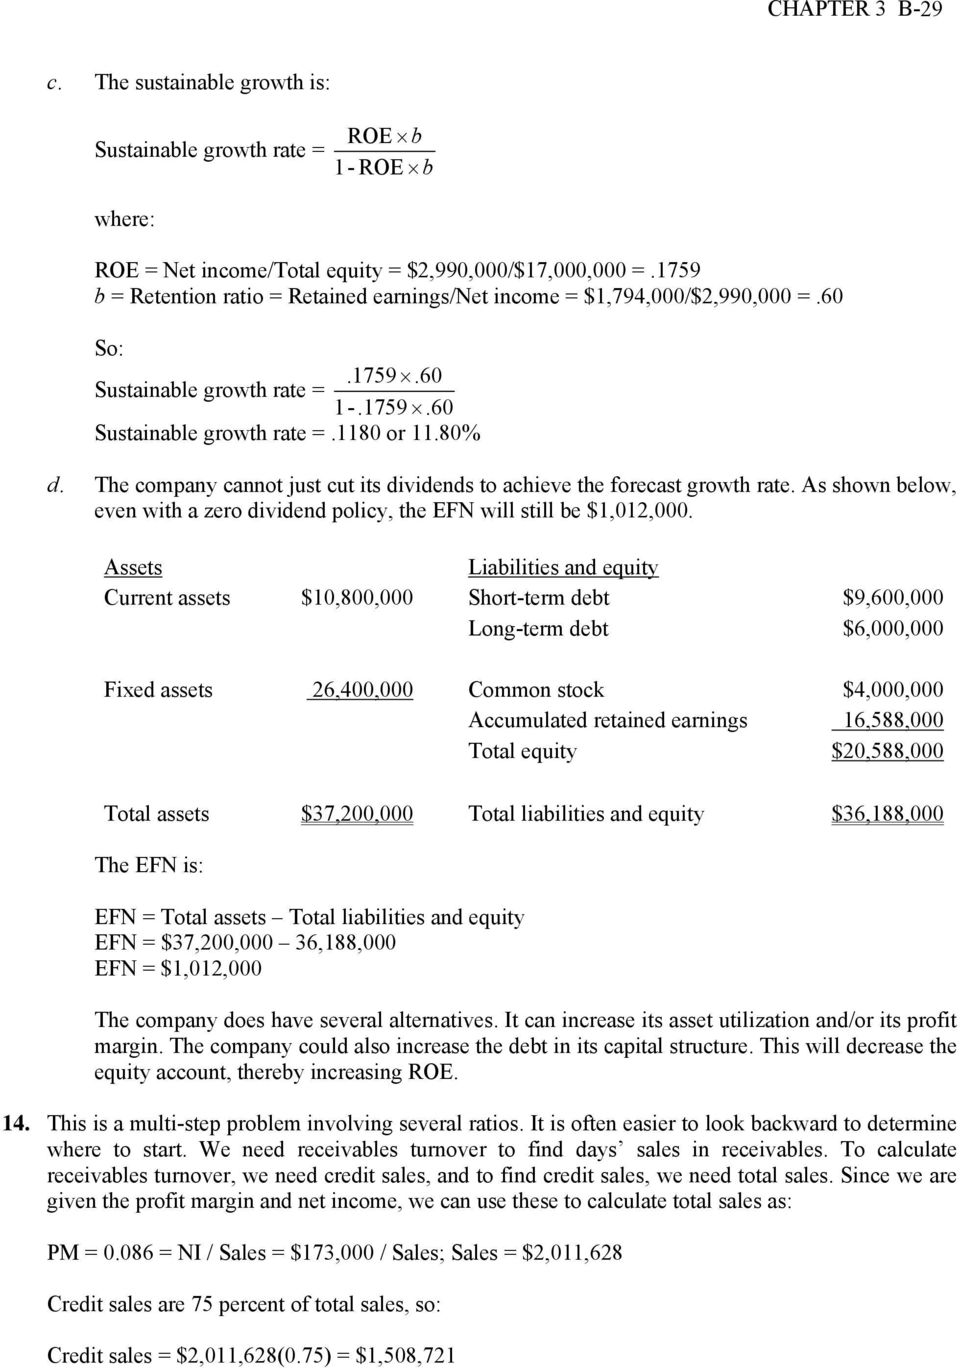 CHAPTER 3 LONG-TERM FINANCIAL PLANNING AND GROWTH - PDF